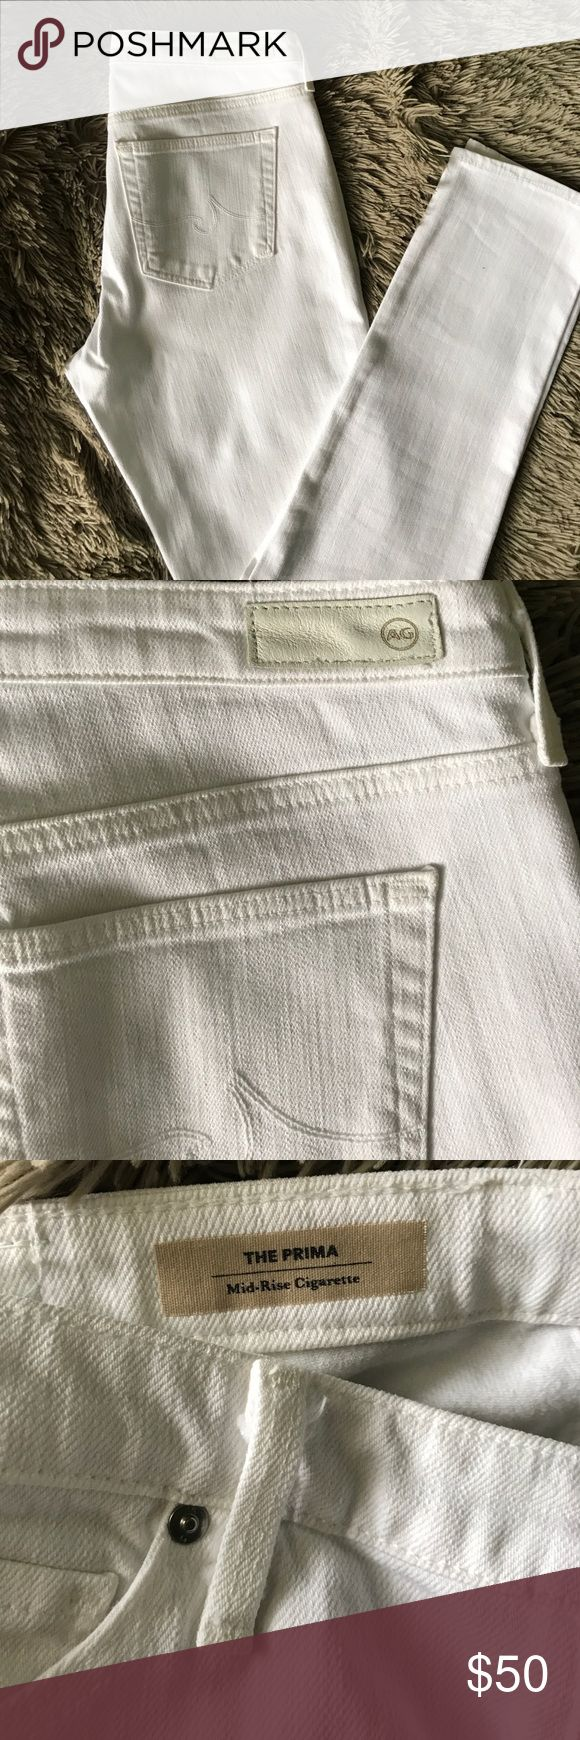 AG jeans AG jeans, The Prisma mid-rise cigarette AG Adriano Goldschmied Pants Skinny